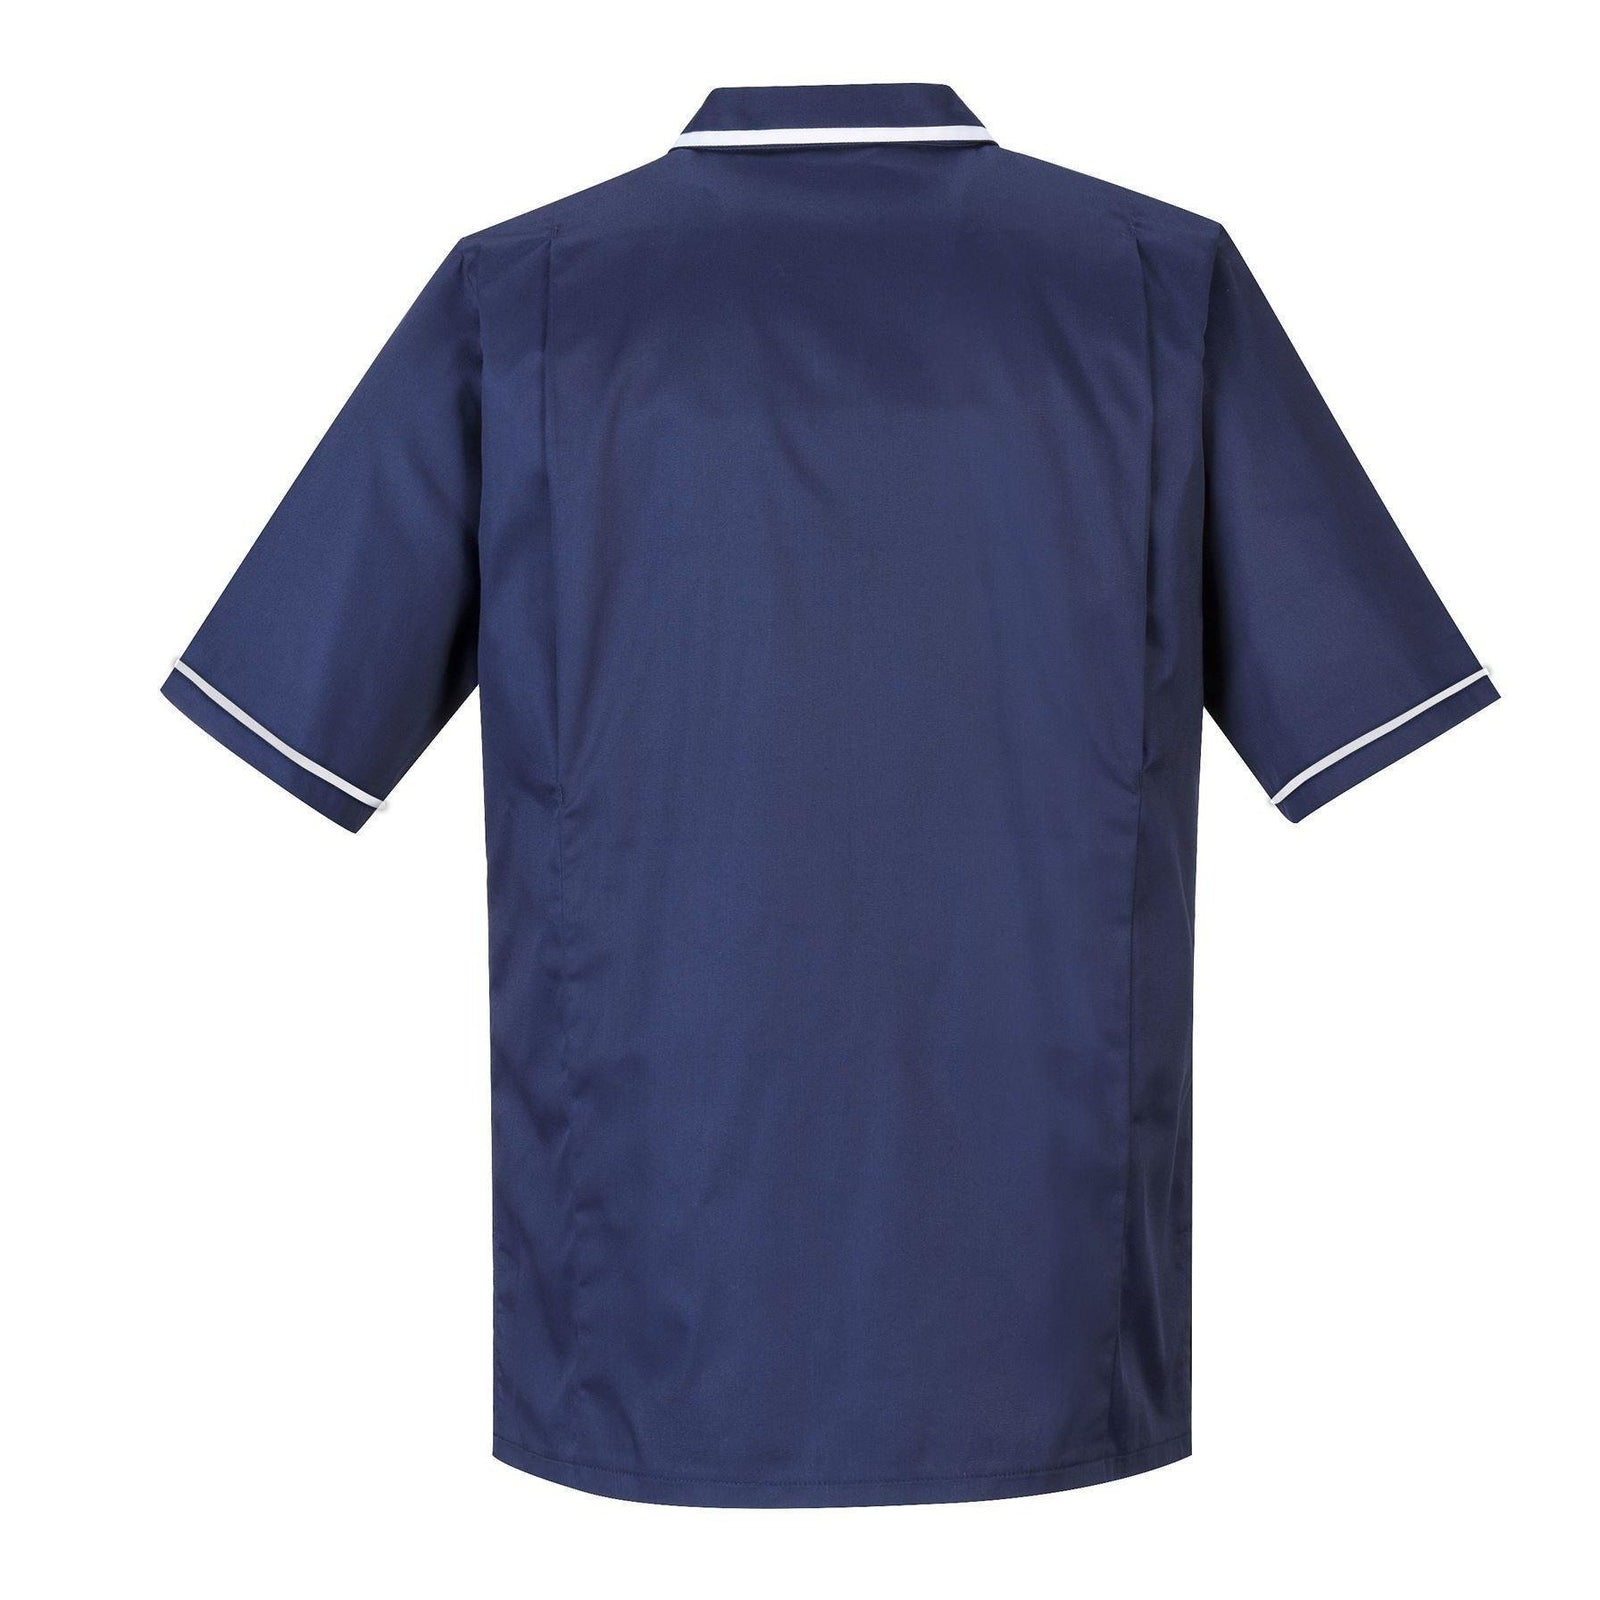 Portwest Mens Health Tunic C820 - reid outdoors